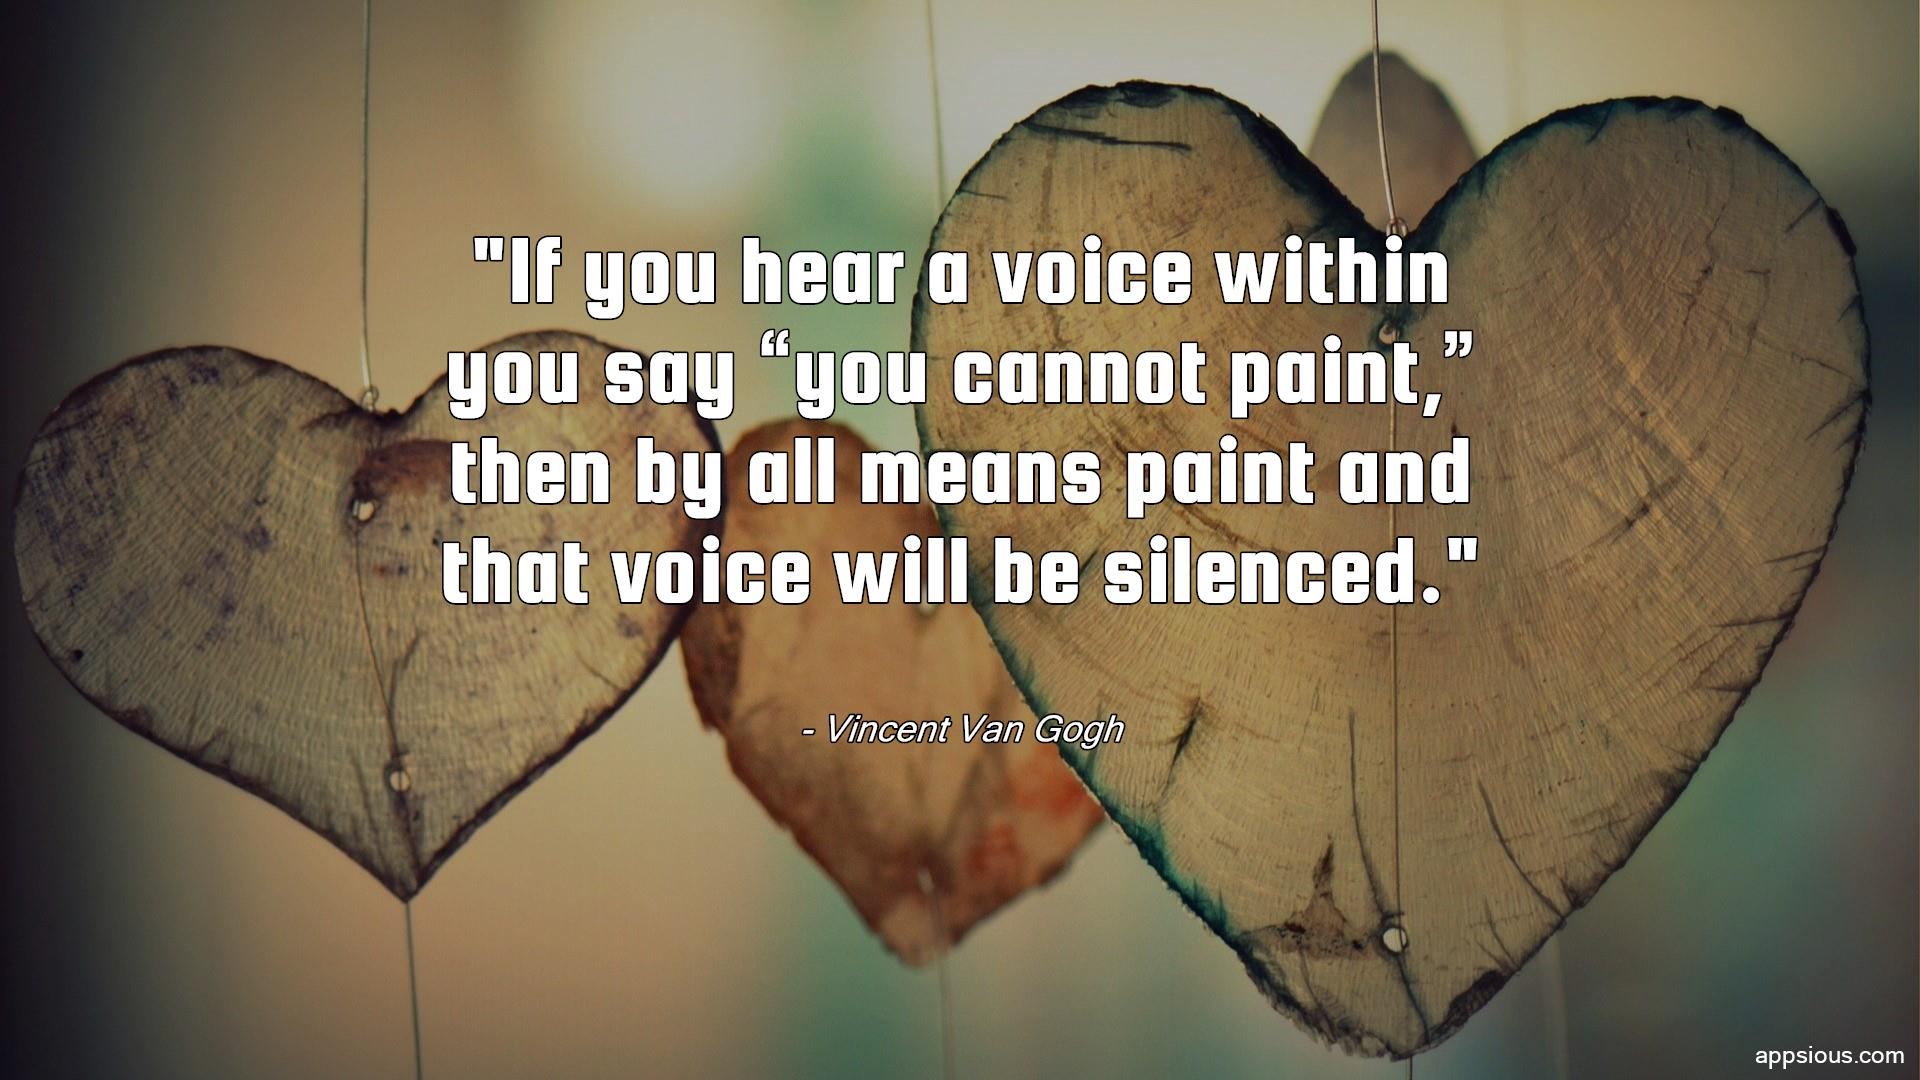 "If you hear a voice within you say ""you cannot paint,"" then by all means paint and that voice will be silenced."